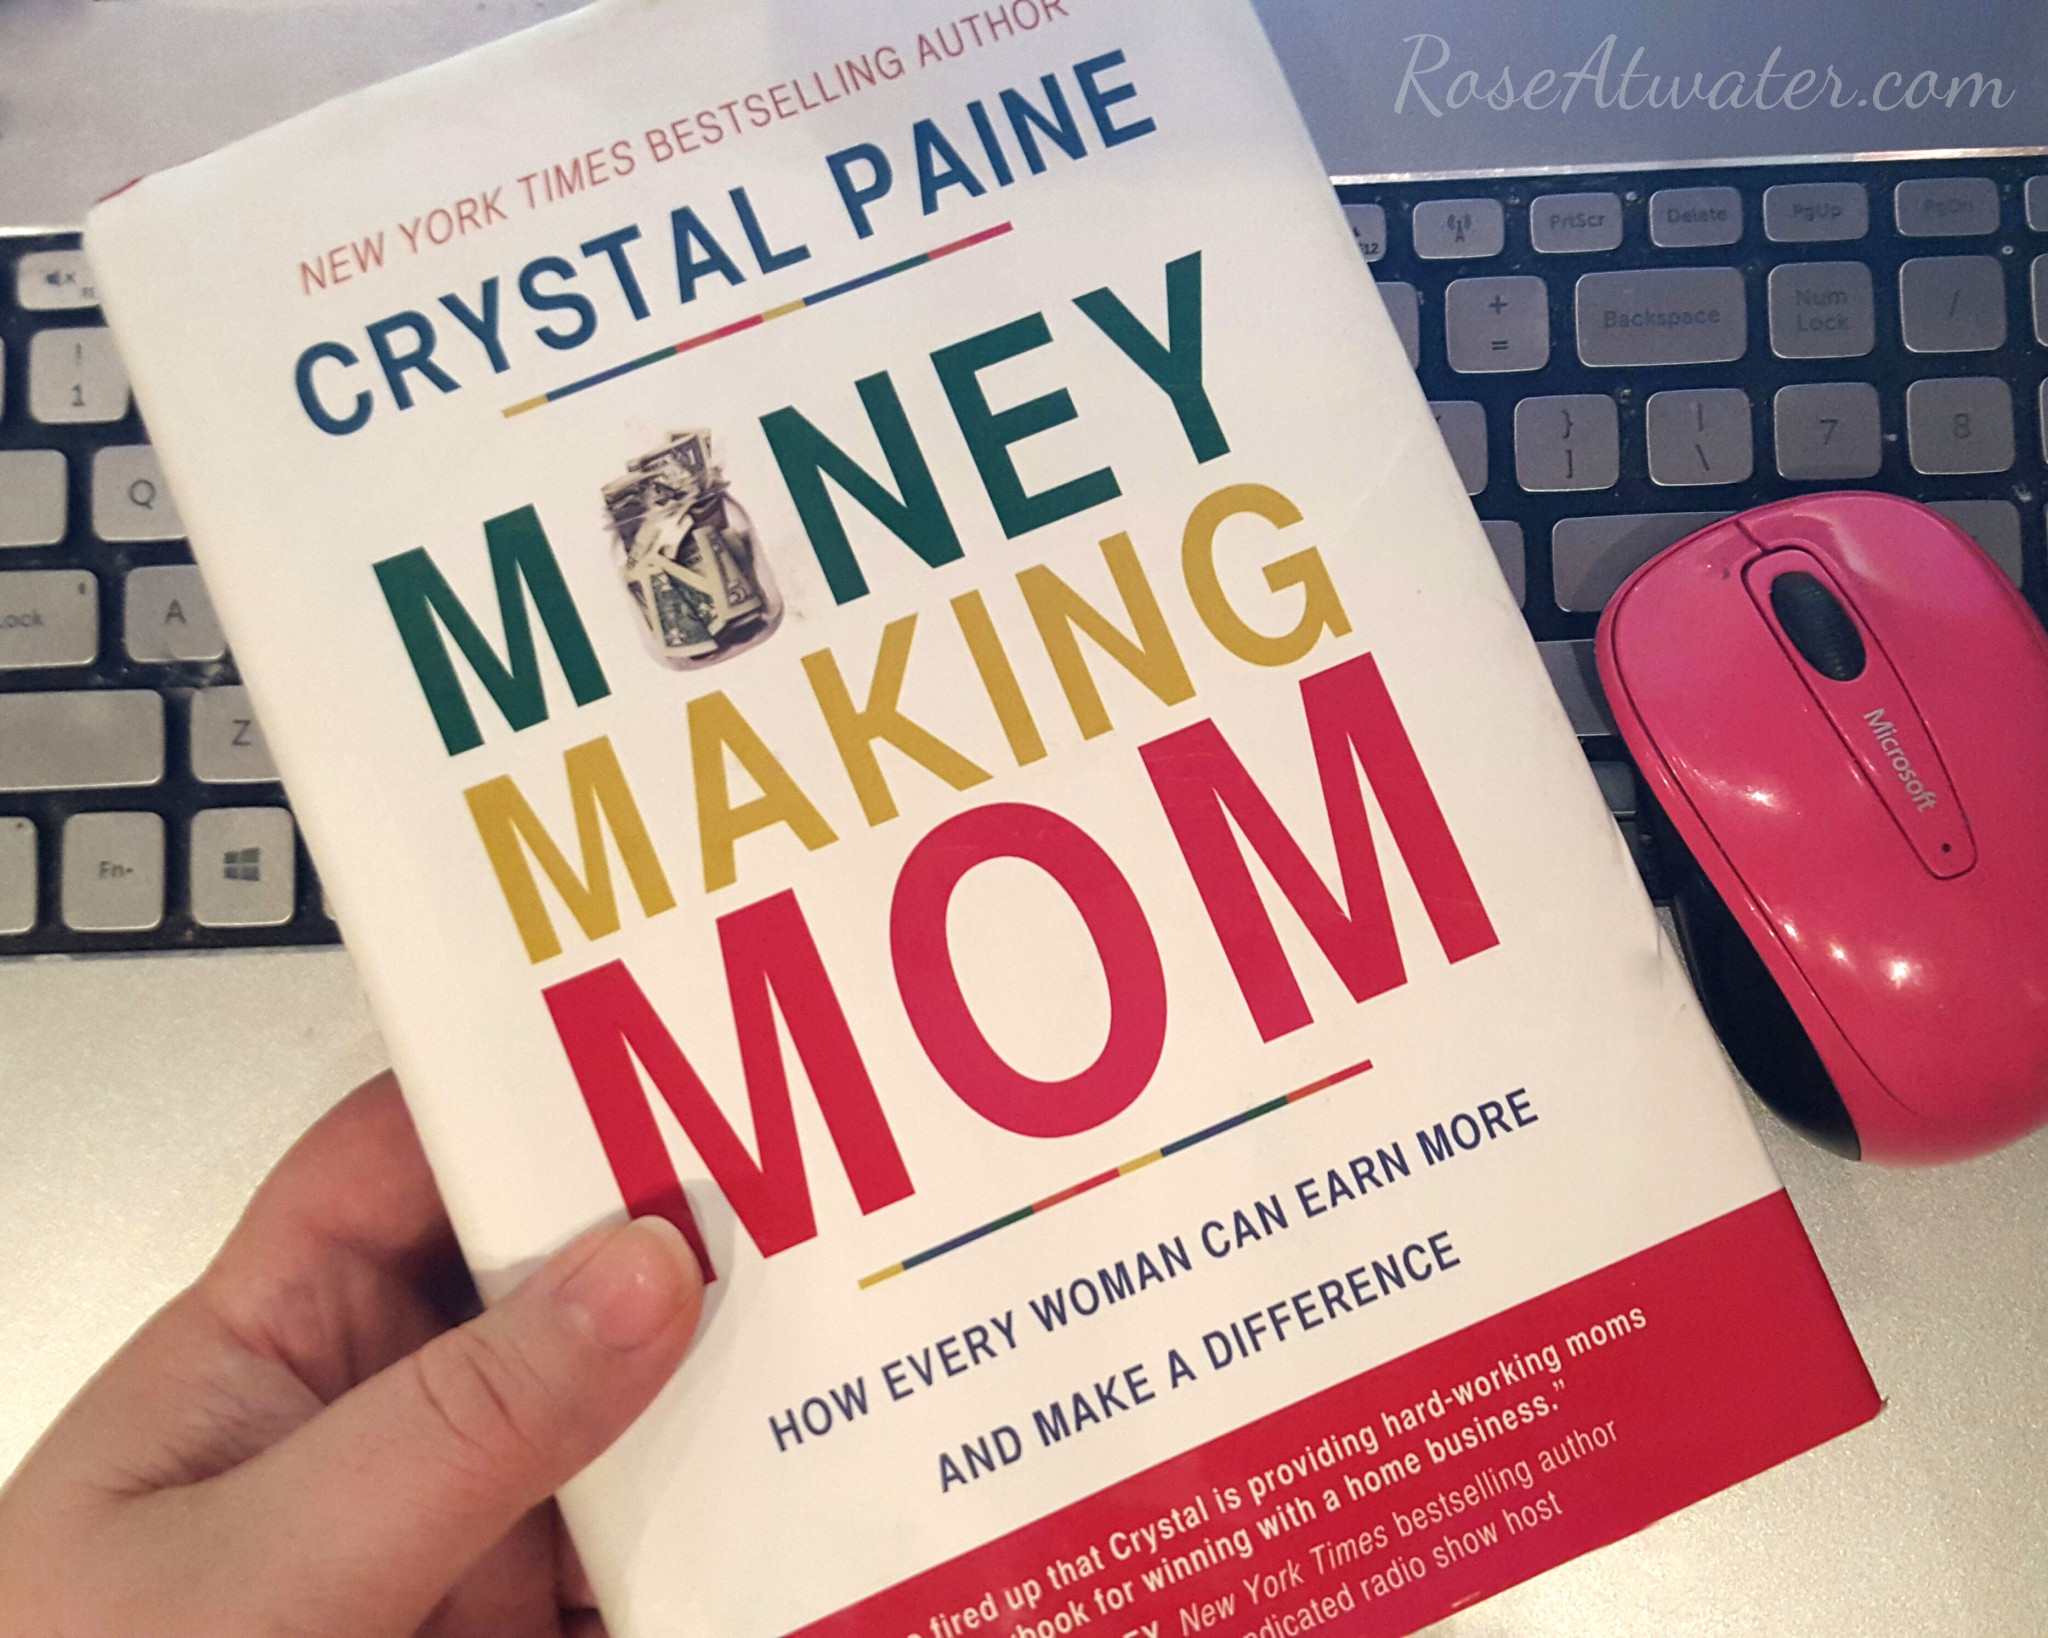 Money Making Mom – Only $2.99 on Kindle!